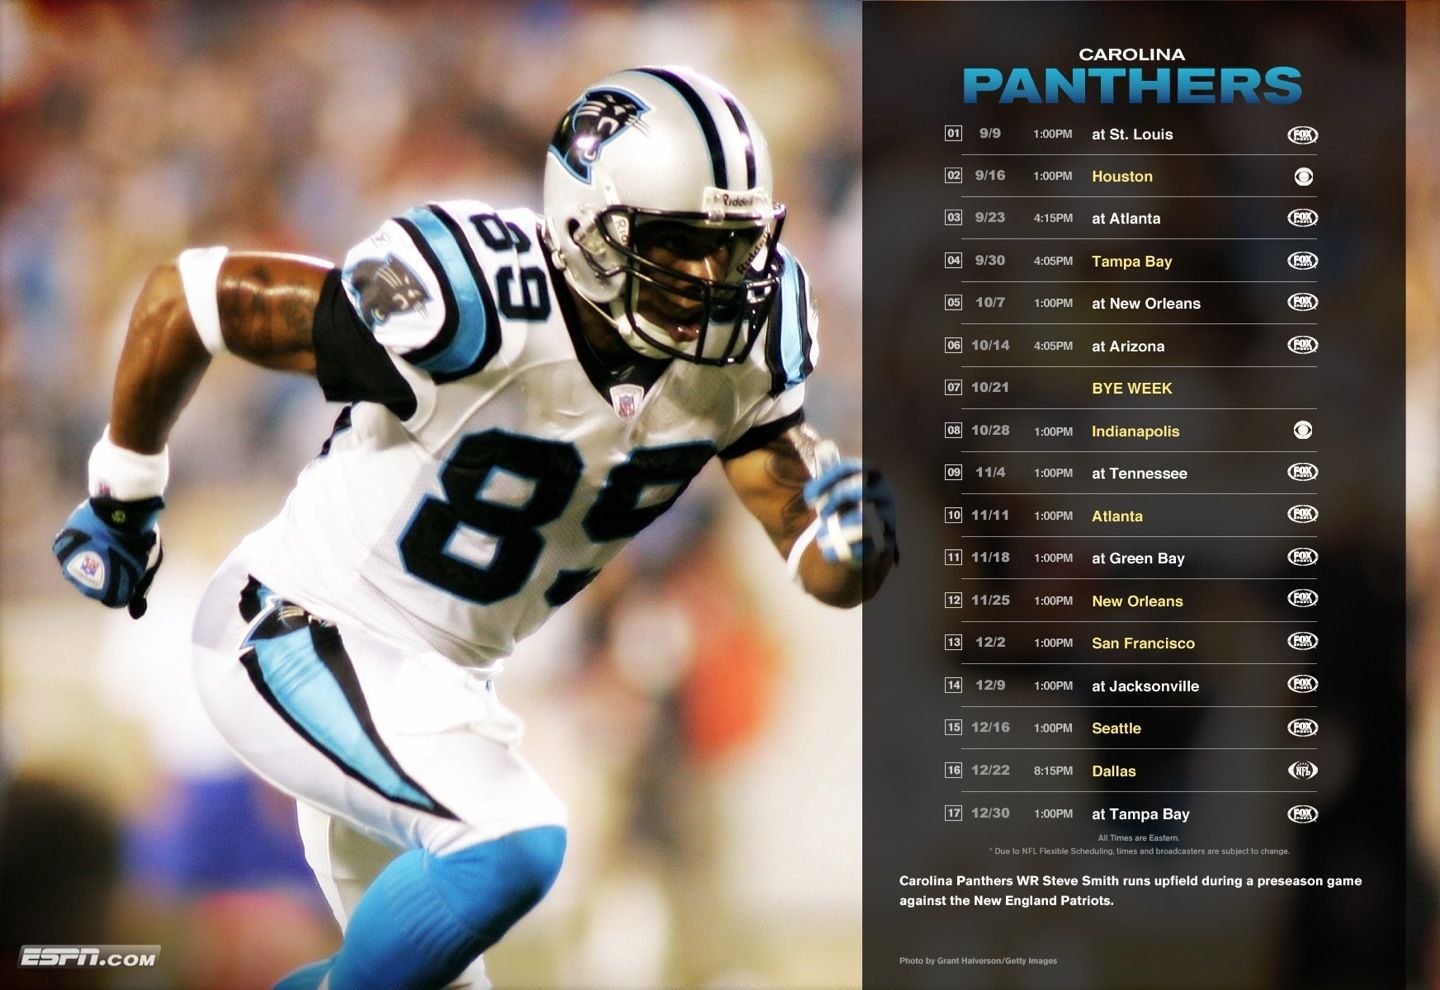 Carolina Panthers - Steve Smith. Labels: Panthers